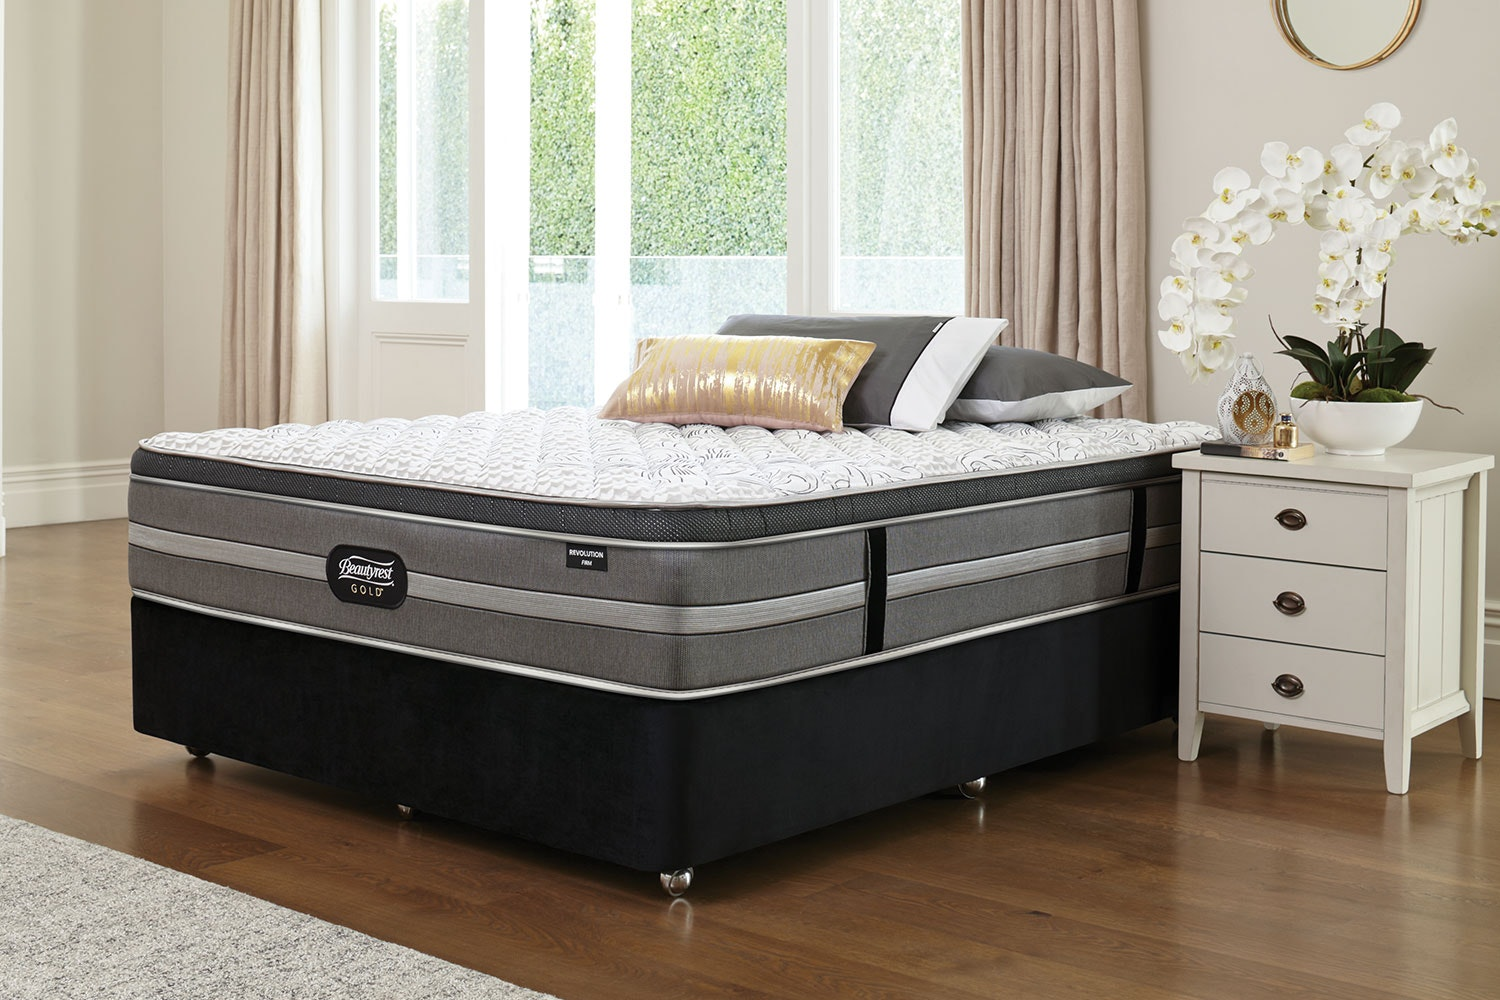 Revolution Firm Queen Bed by Beautyrest